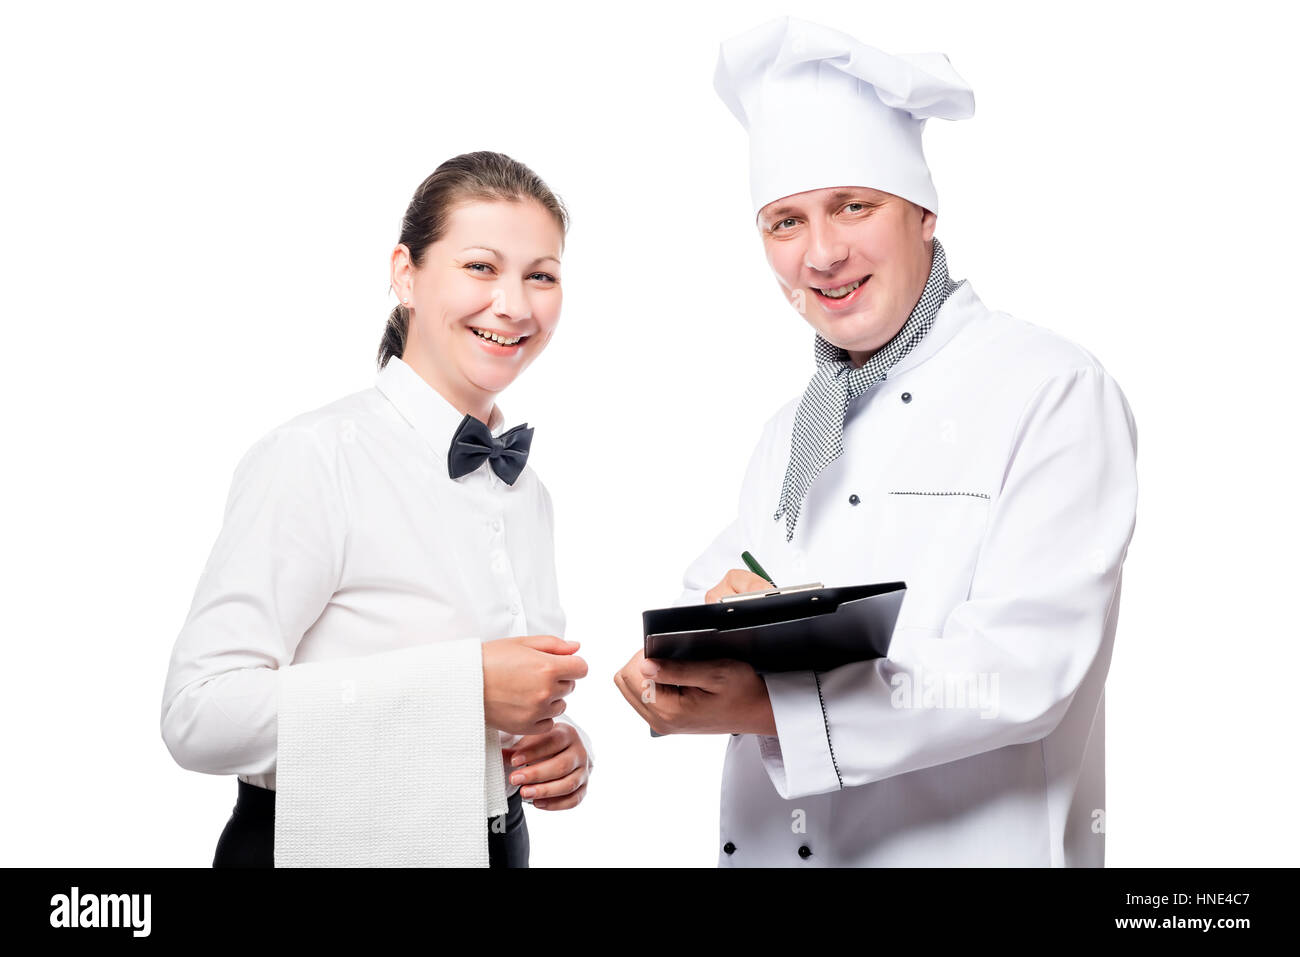 Waiter stockfotos waiter bilder alamy for Koch und kellner